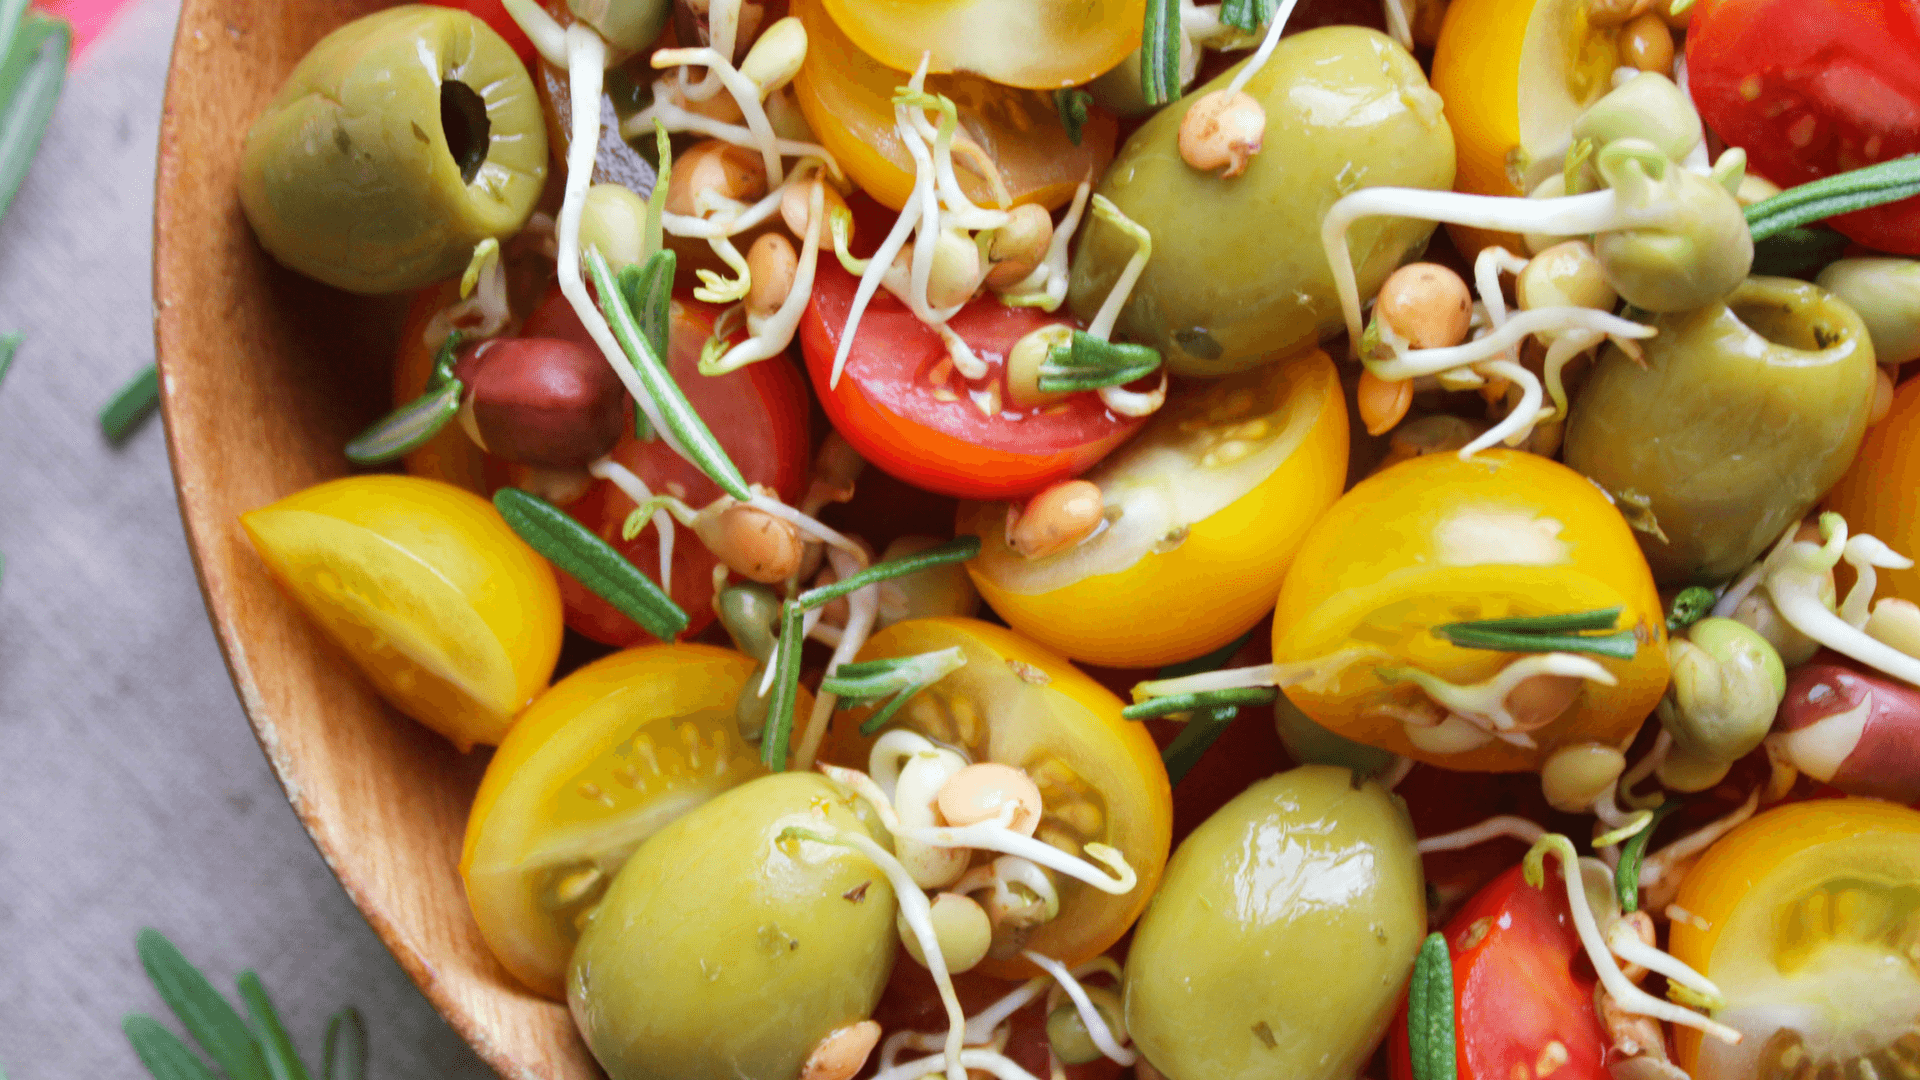 Tomato and bean sprout salad